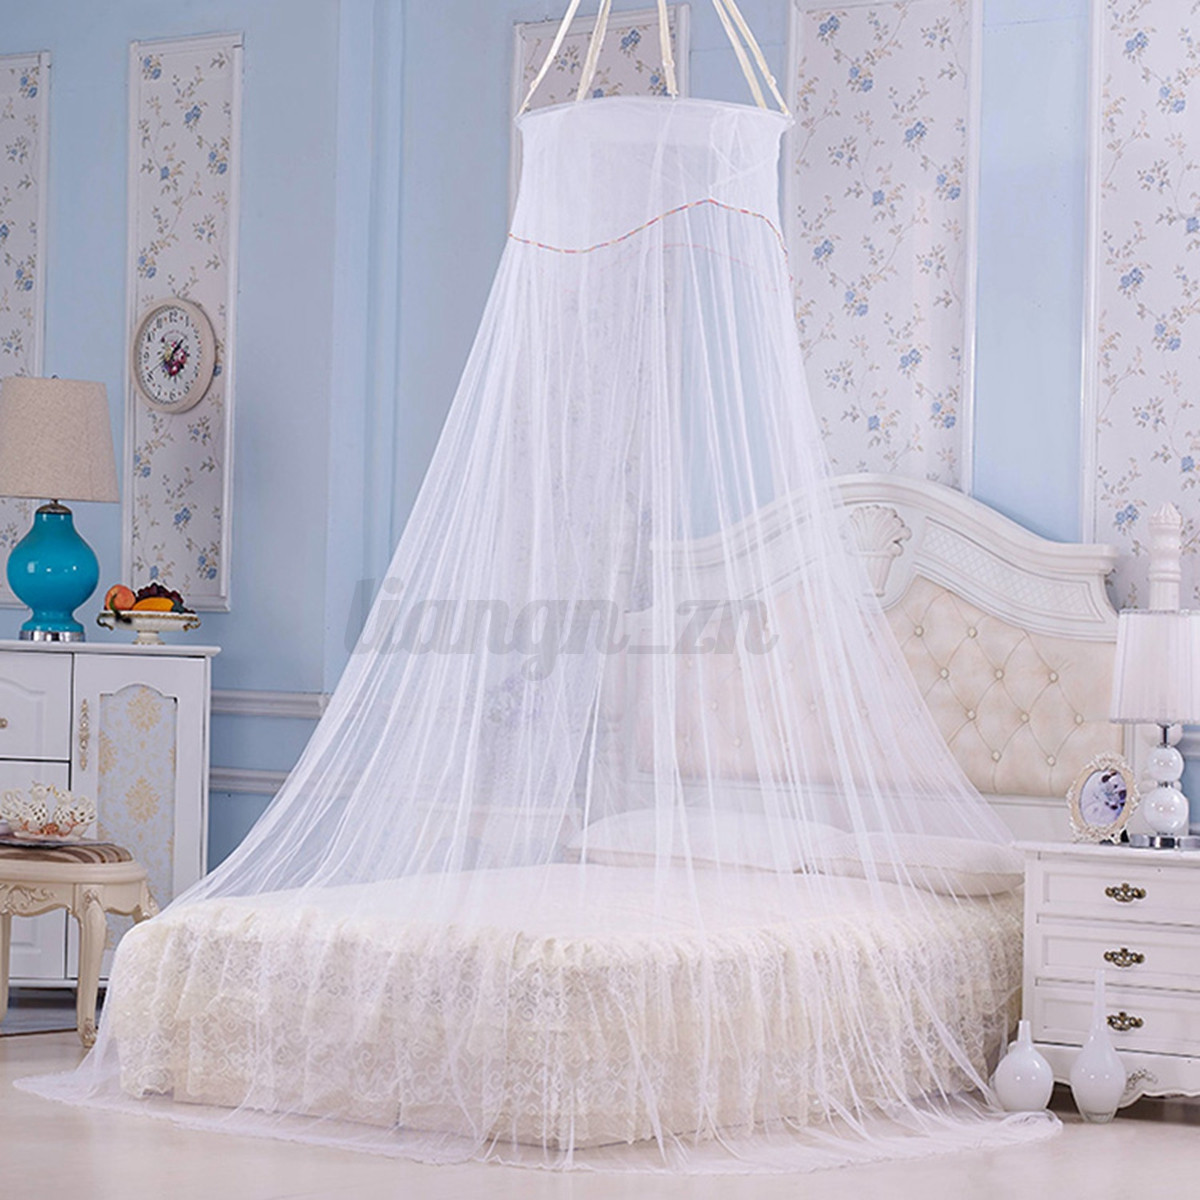 1pcs ciel de lit moustiquaire baldaquin d co voile chambre rond filet princesse ebay. Black Bedroom Furniture Sets. Home Design Ideas